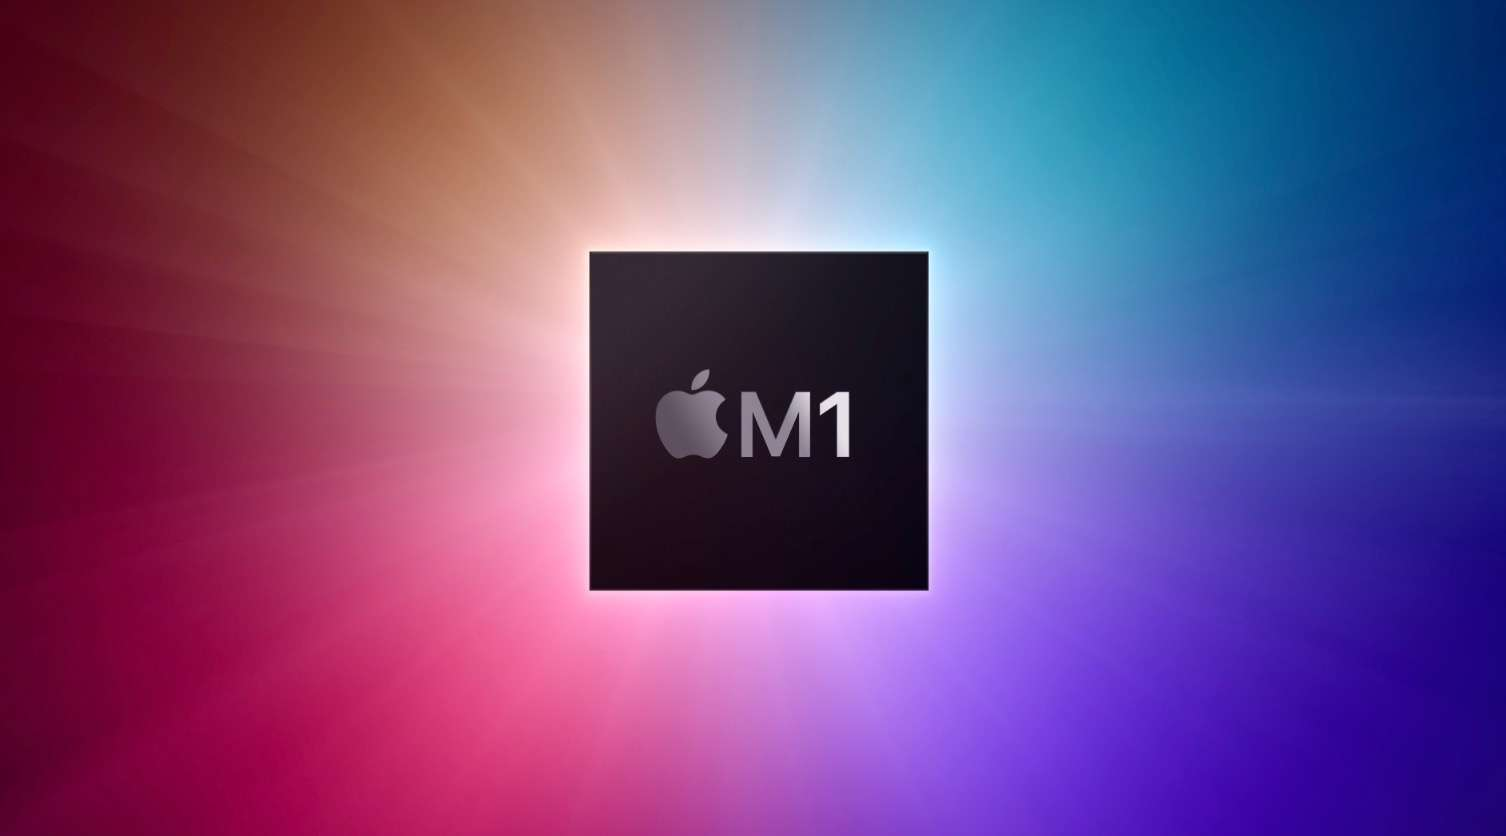 Apple M1 chip for ARM Macs